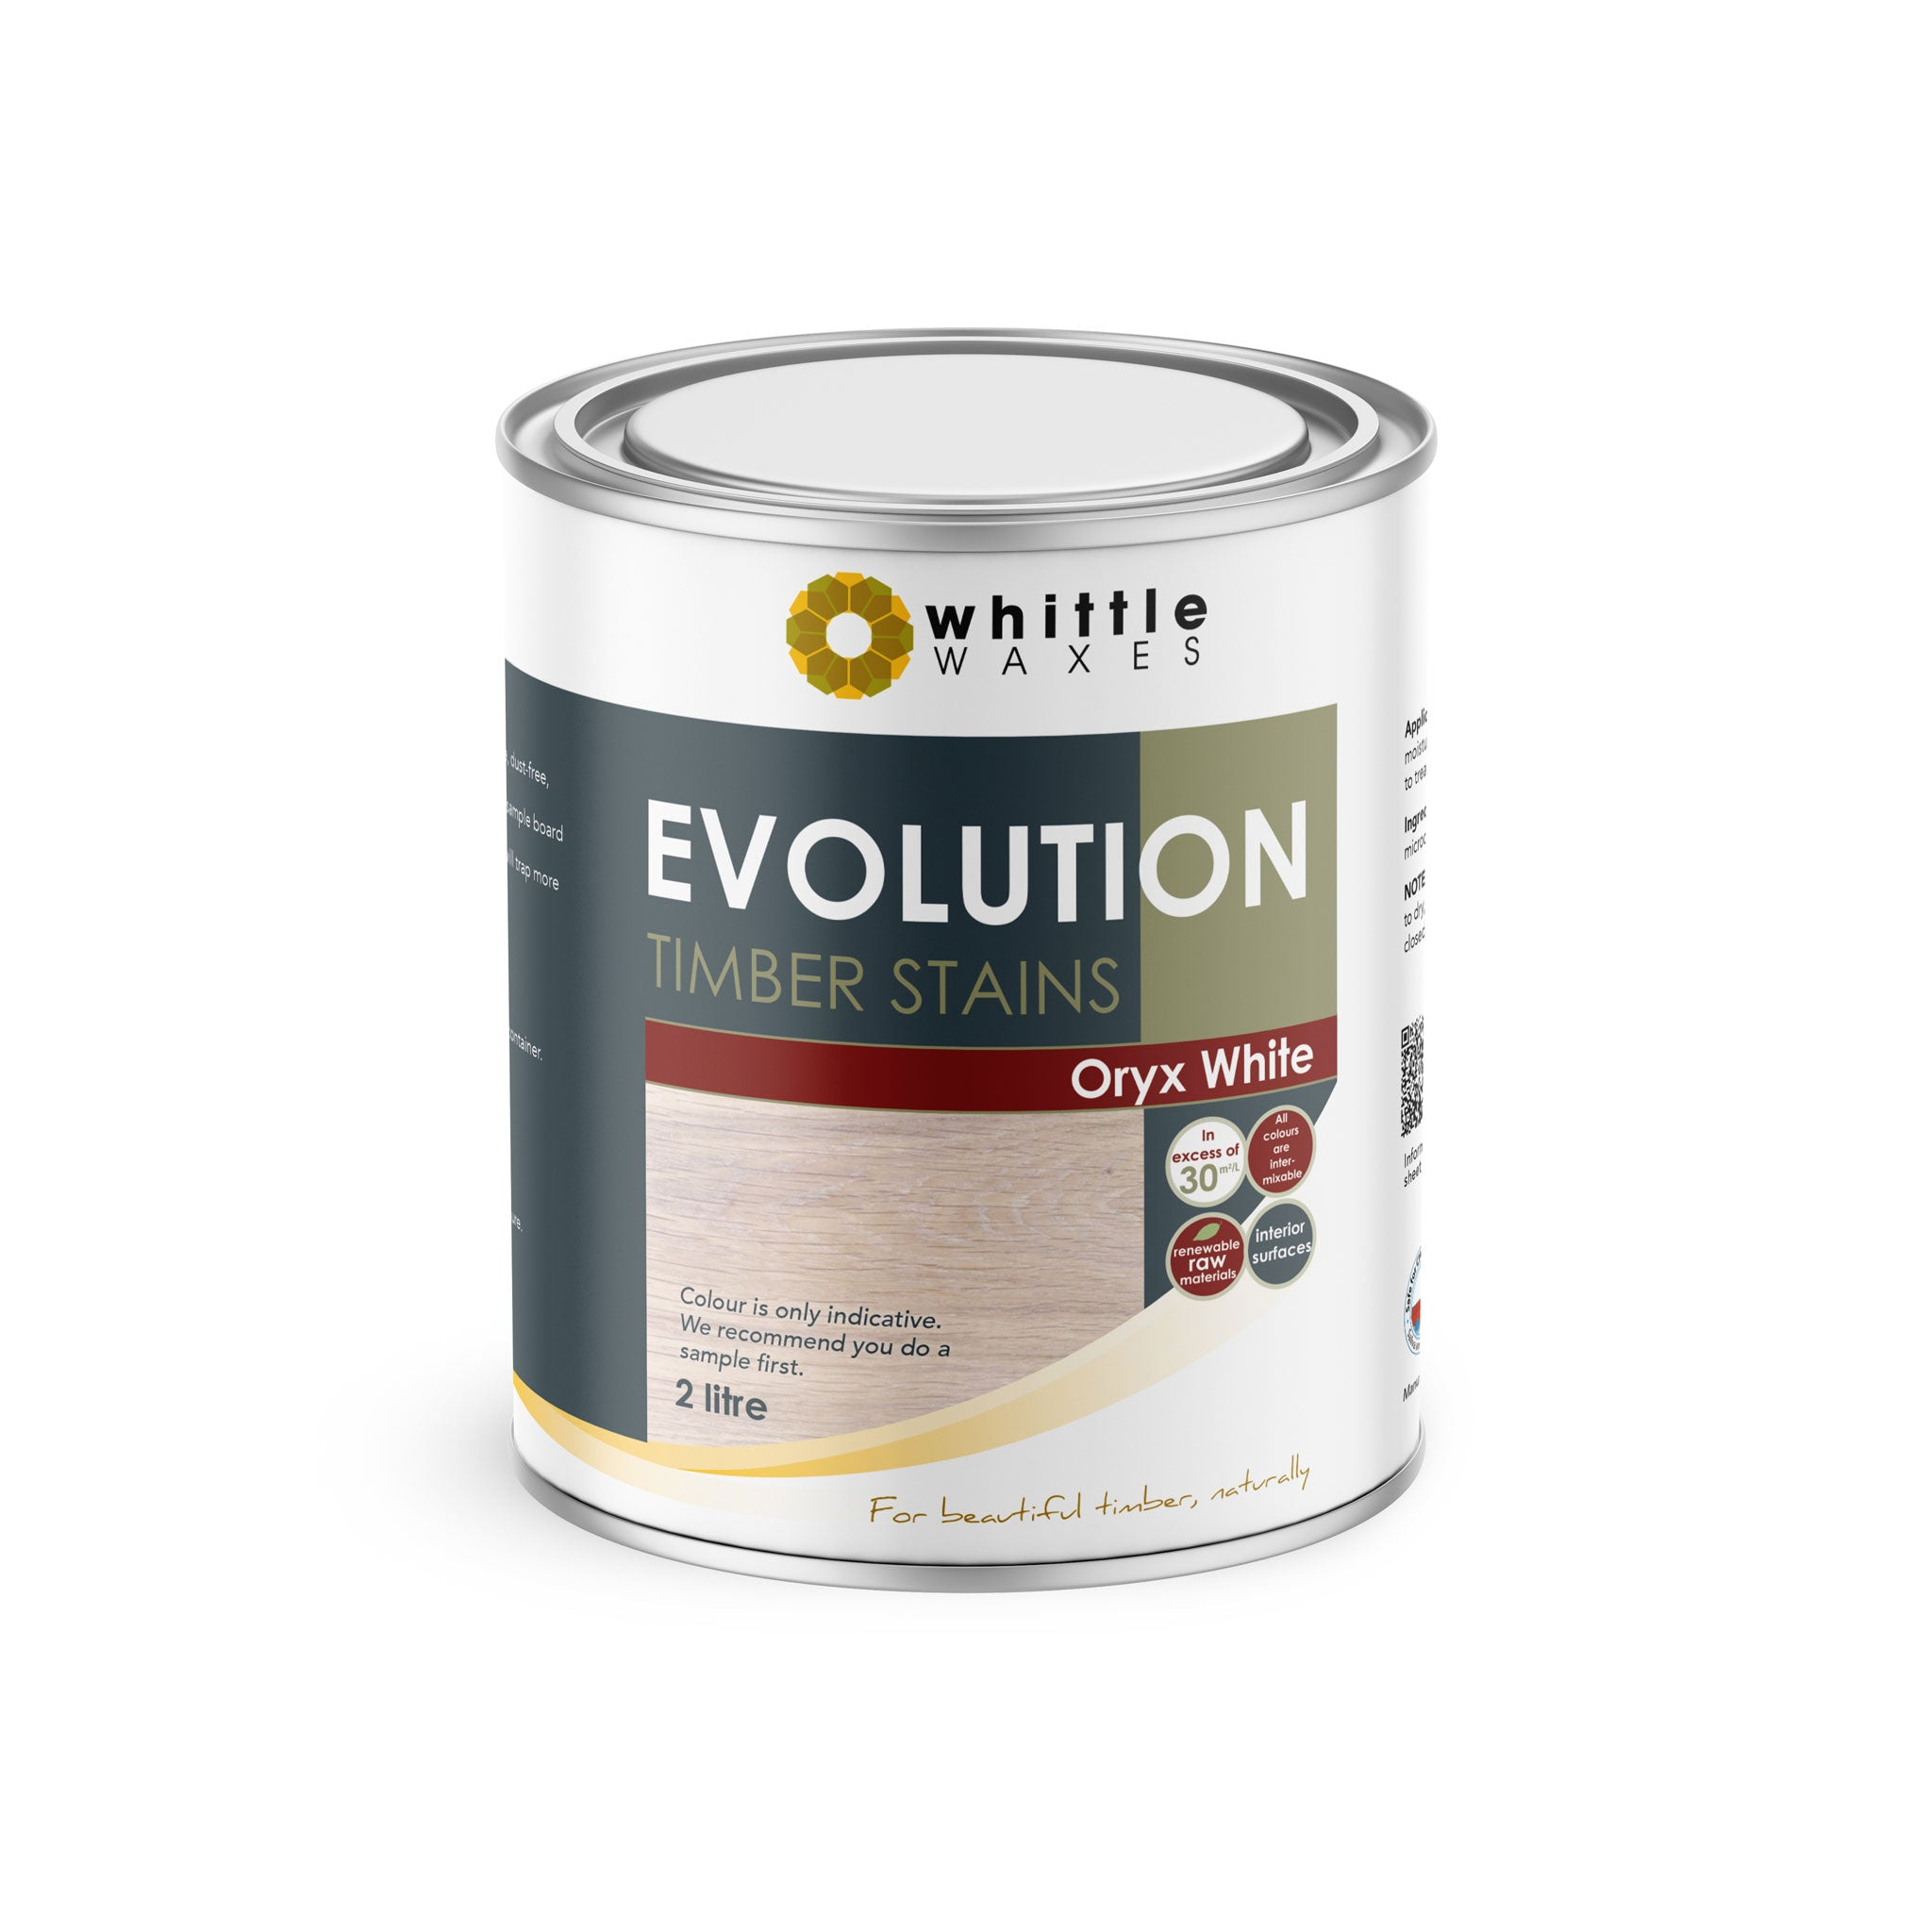 Whittle Waxes Evolution Colours (Oryx White) - quality timber stain - 2 Litre